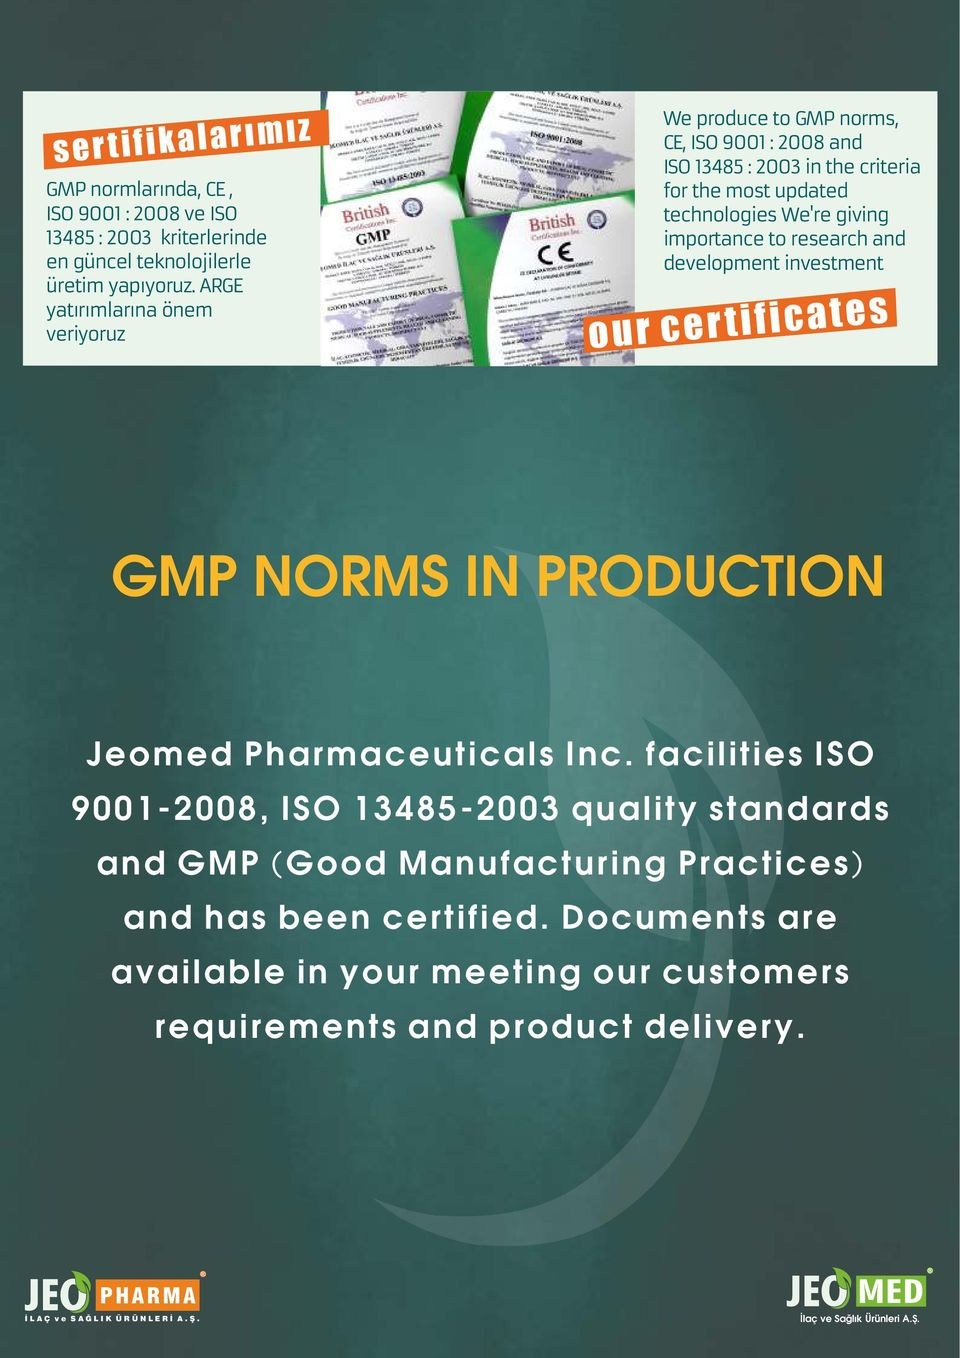 giving importance to research and development investment our cer tificates GMP NORMS IN PRODUCTION Jeomed Pharmaceuticals Inc.